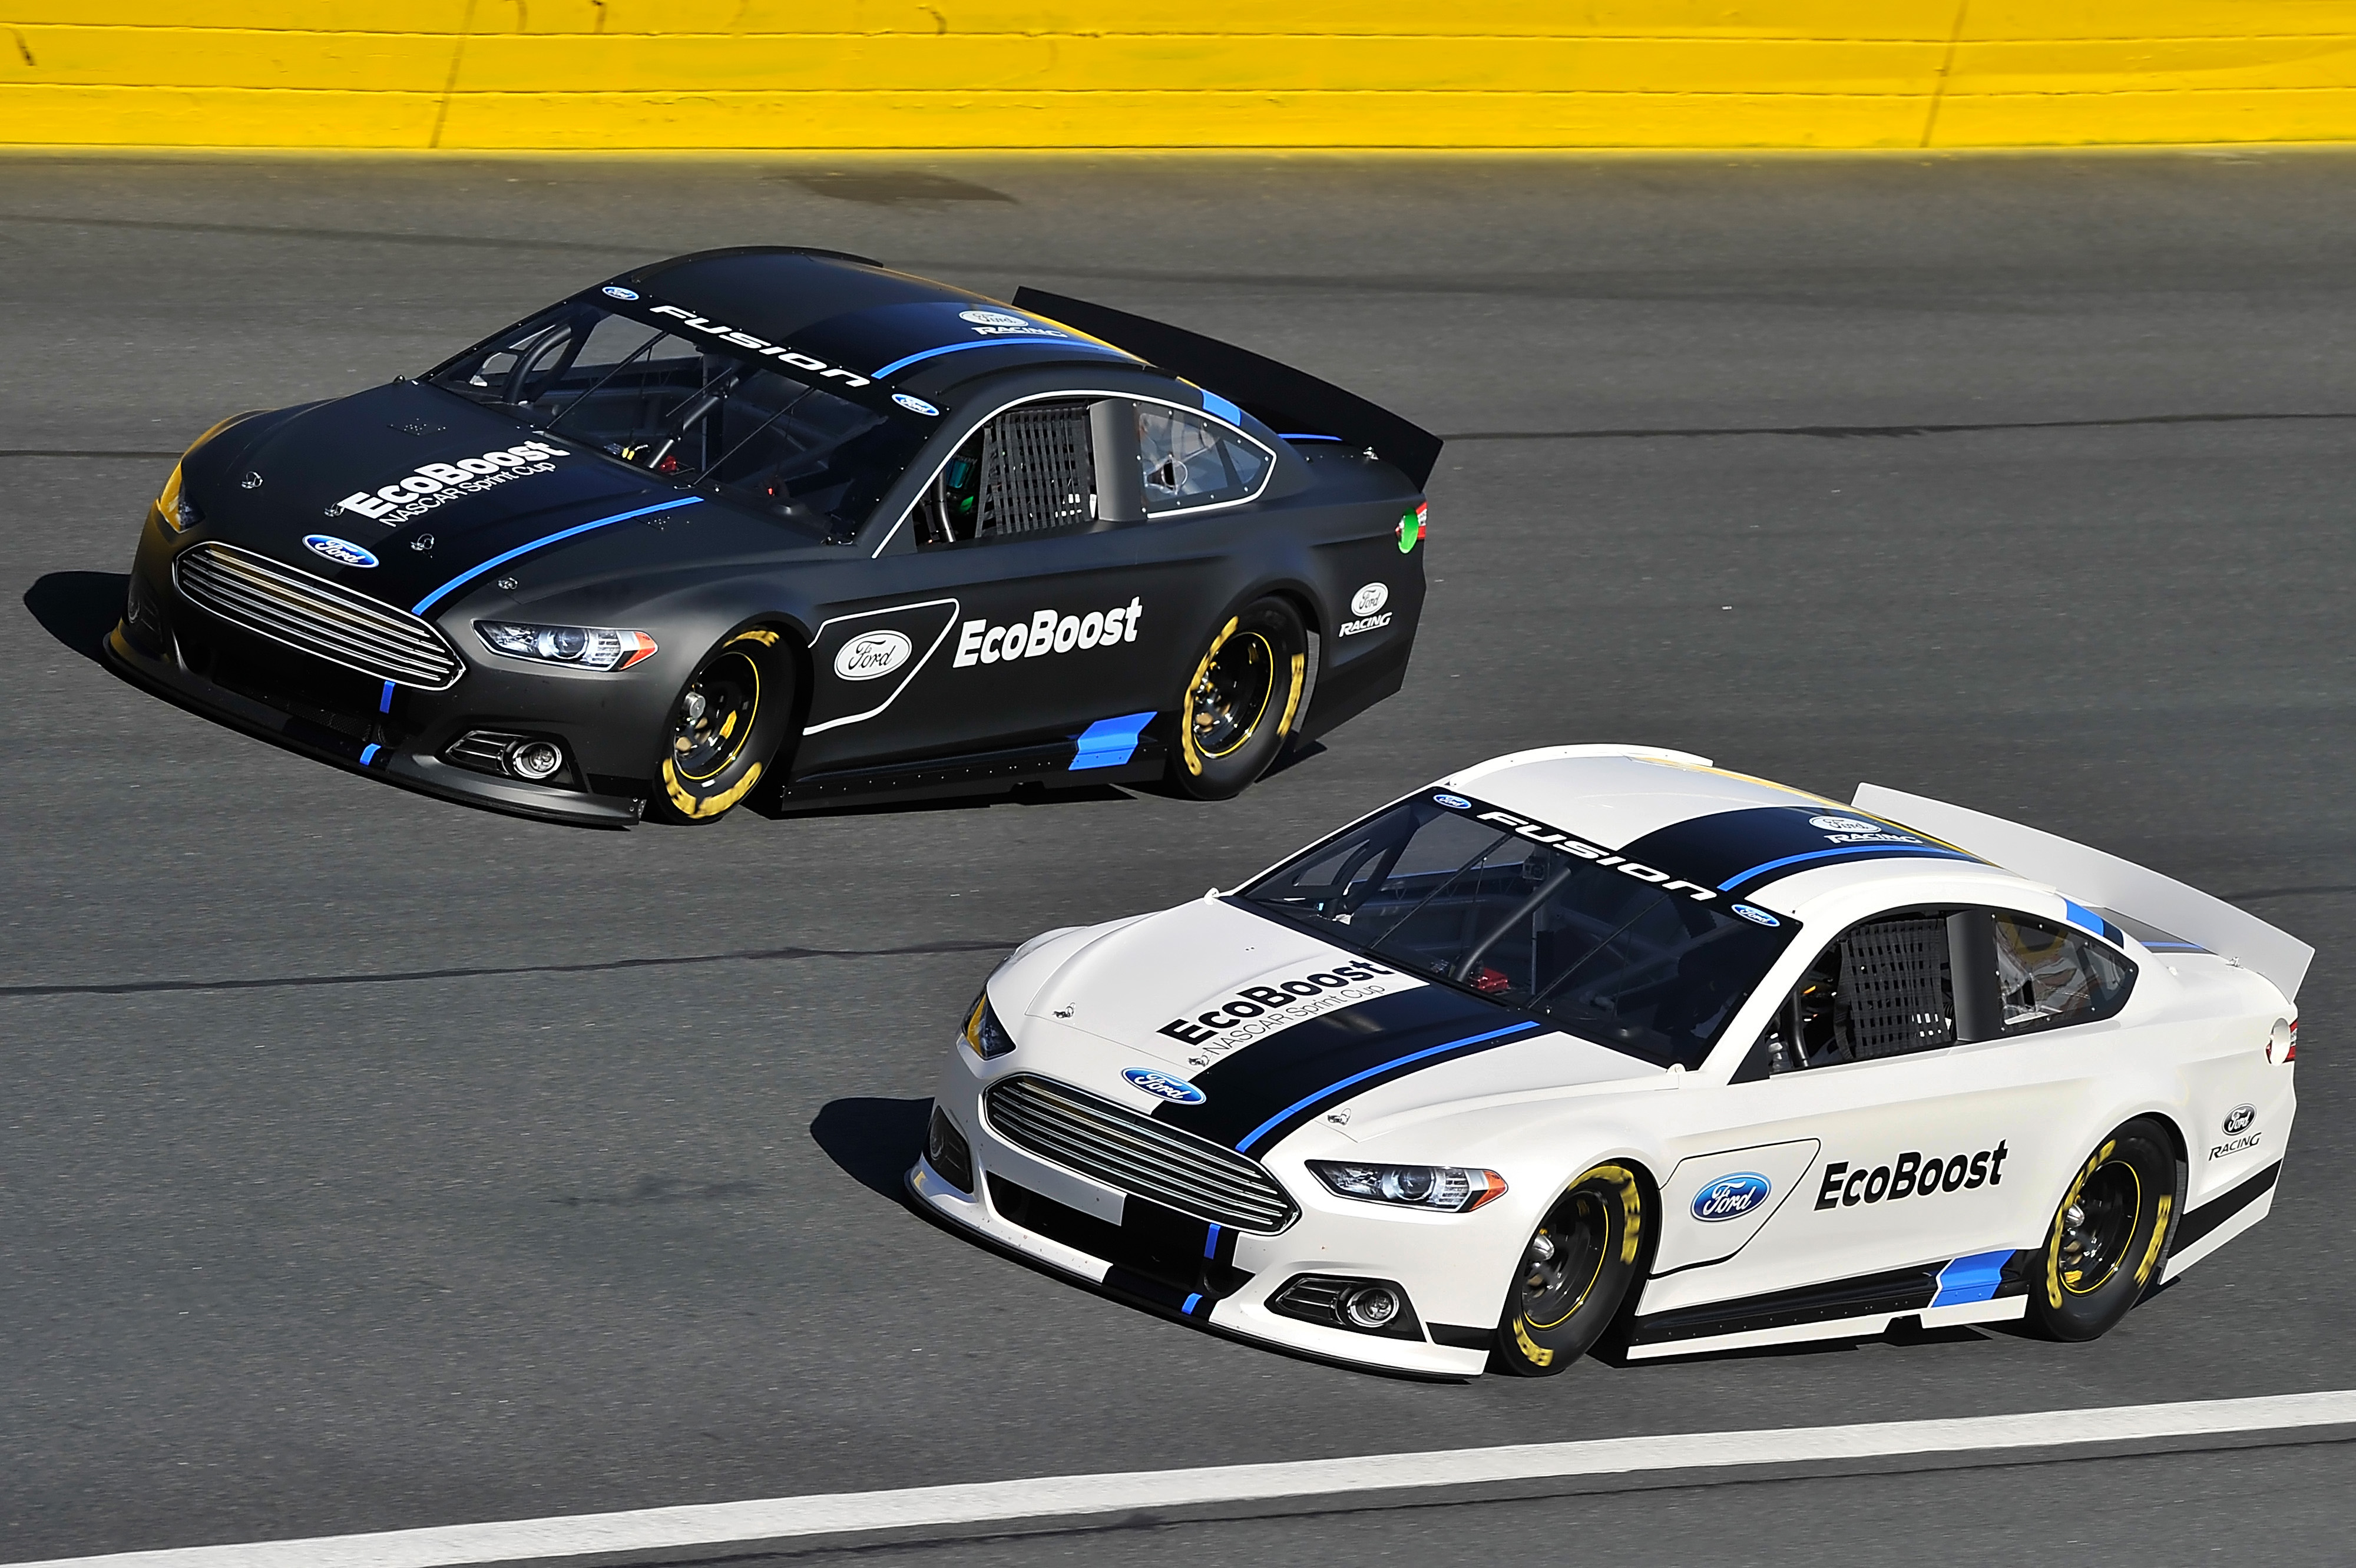 2012 Ford 2013 Fusion Media Day Nascar Cup Series Cars Track The